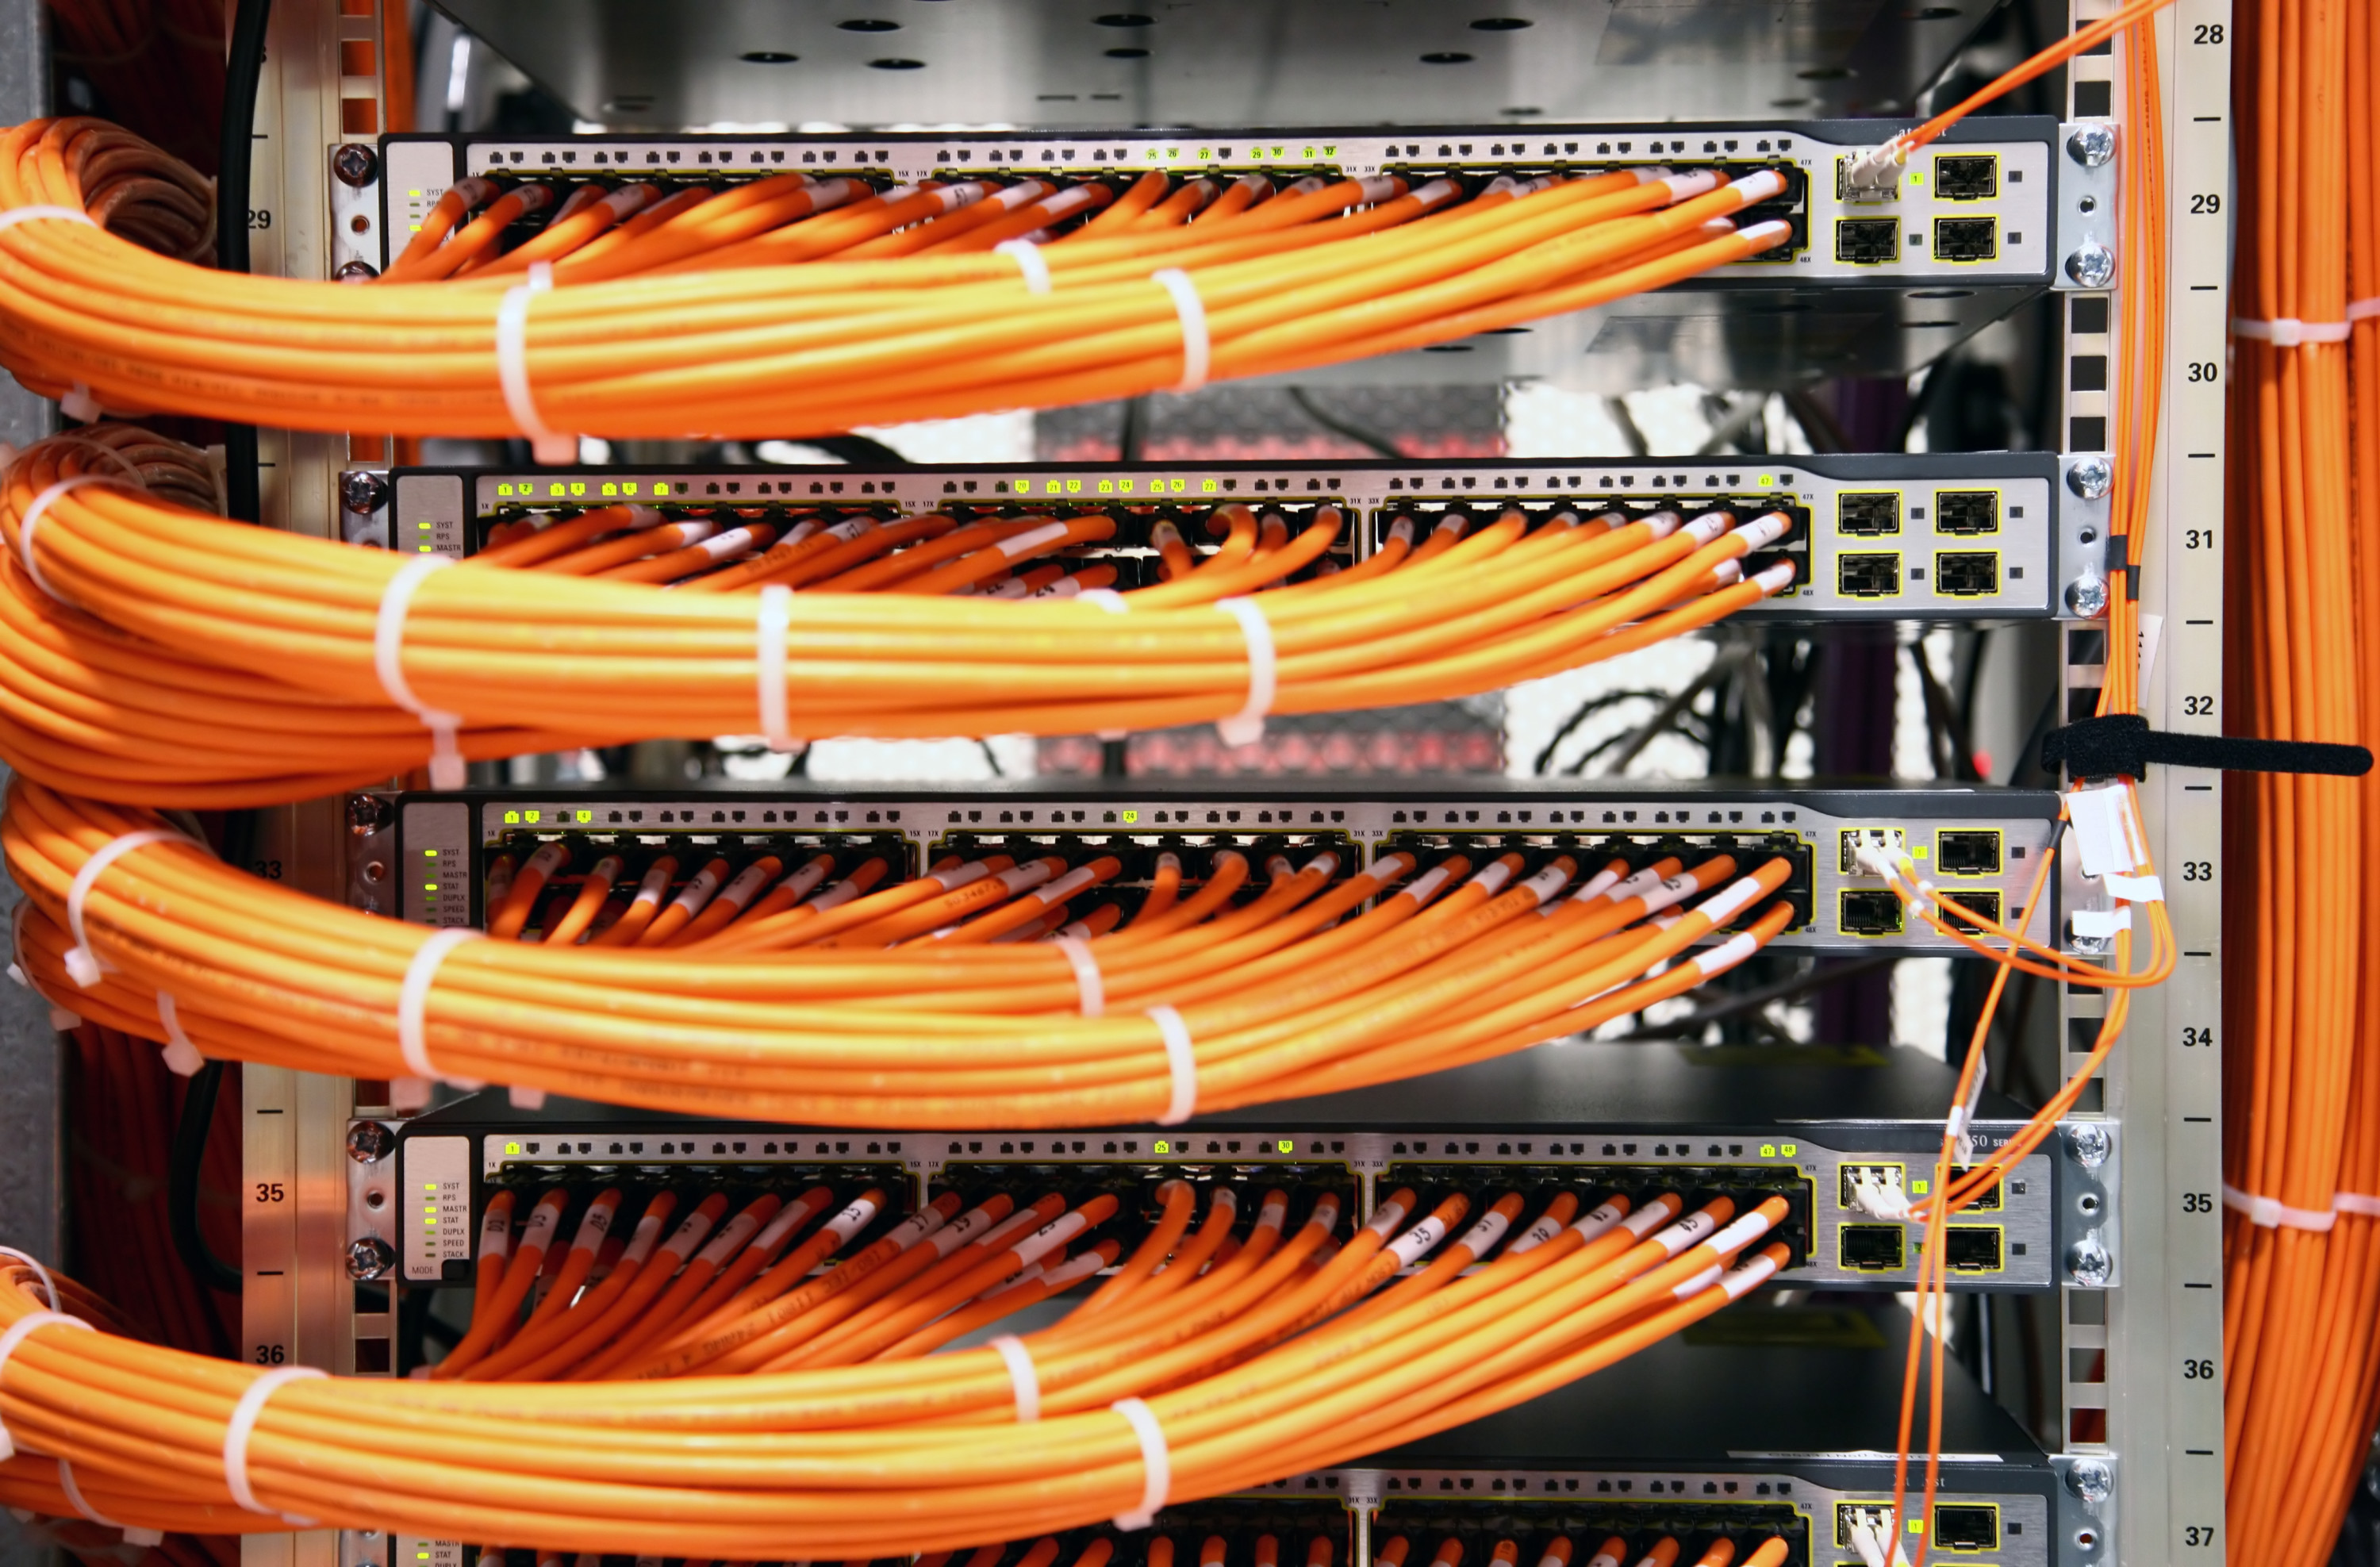 Structured Wiring Image Search Results The Best Network Cable Solutions To Drive Business Forward